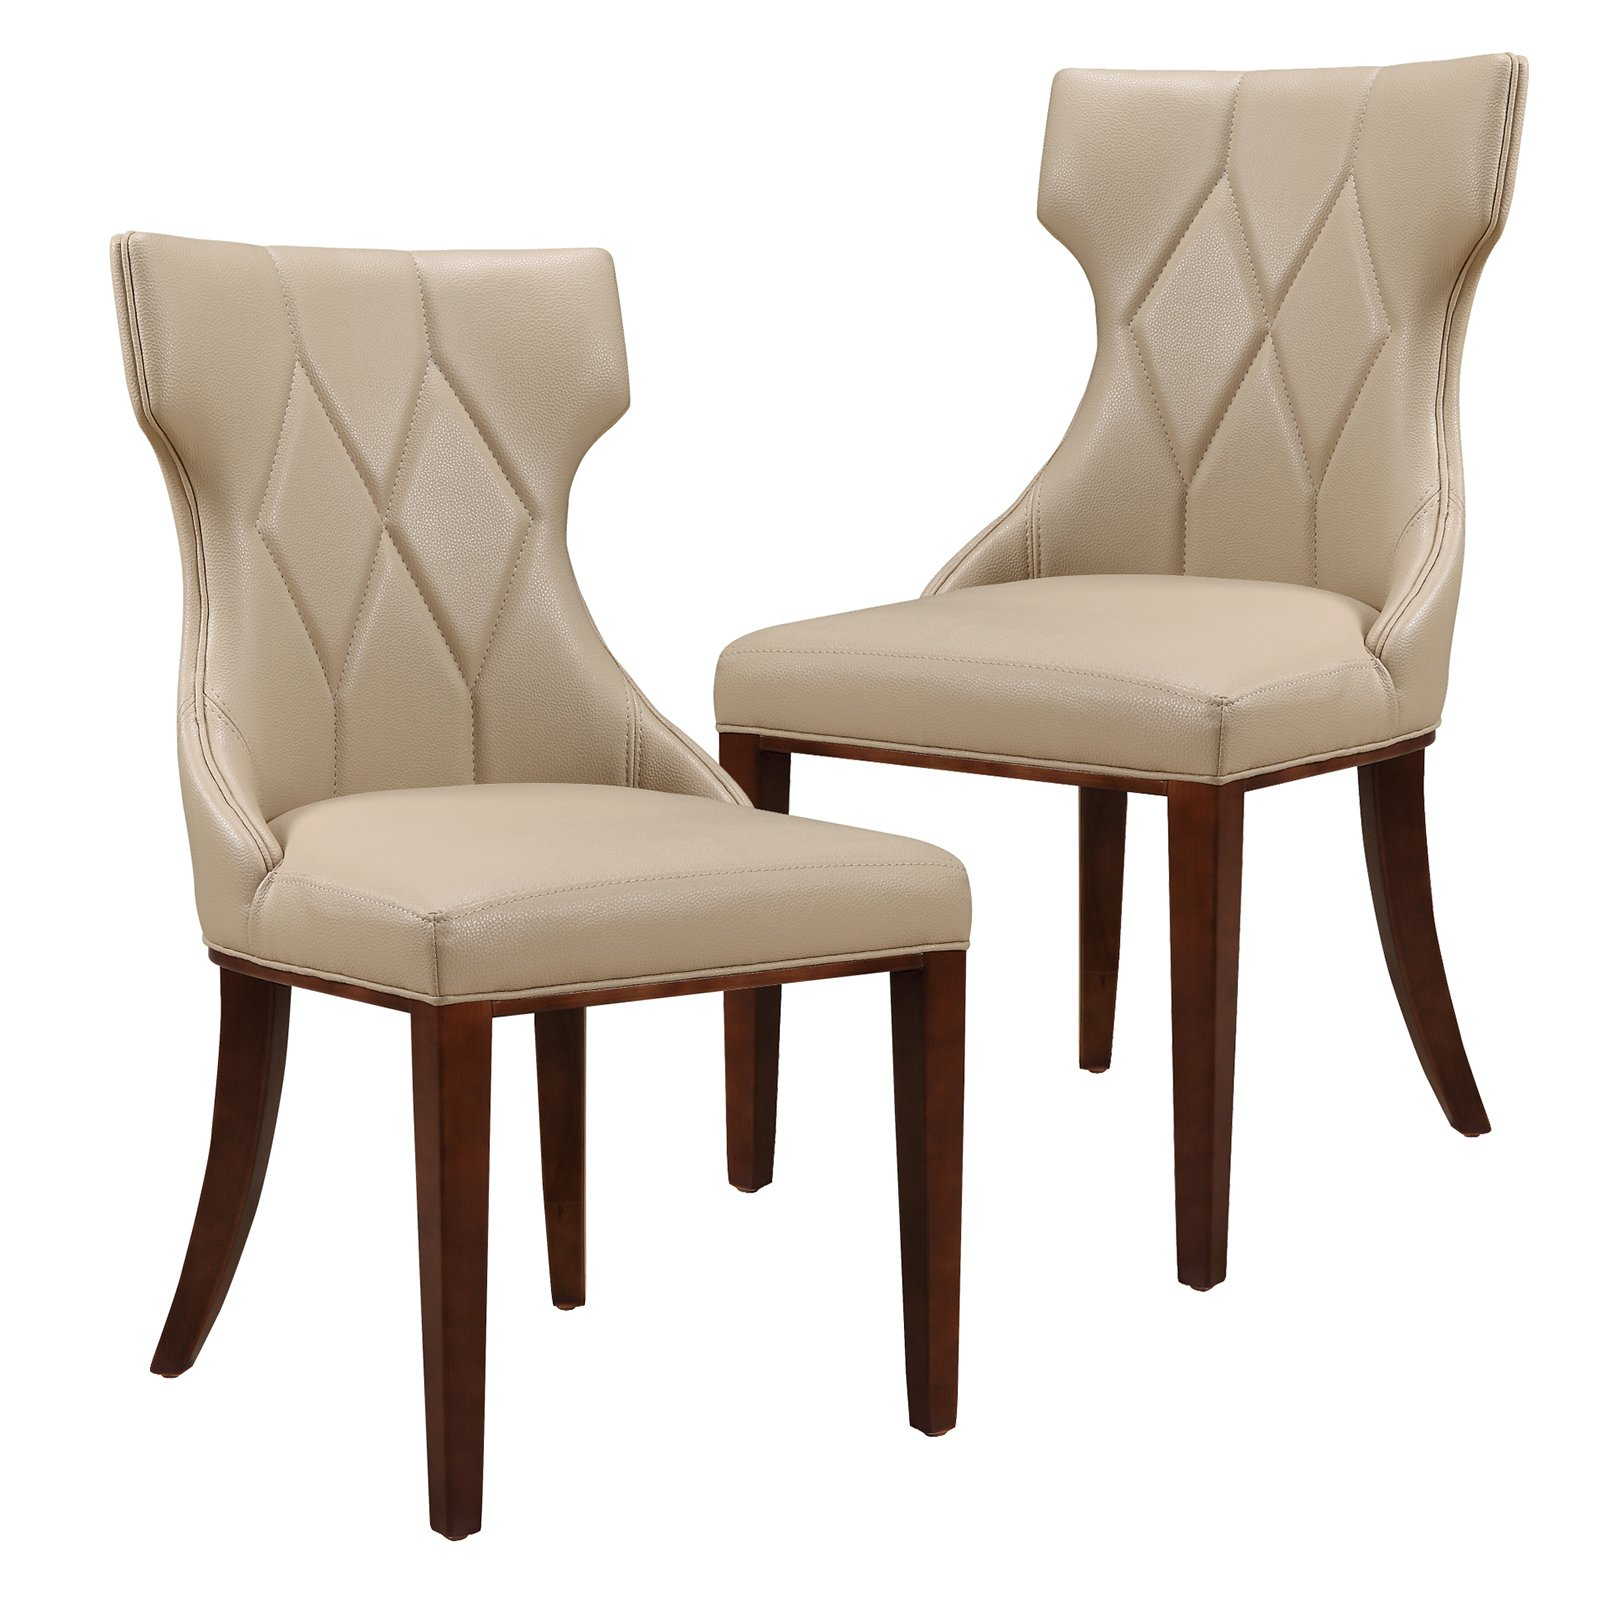 Ceets Reine Leather Dining Chair - Set of 2